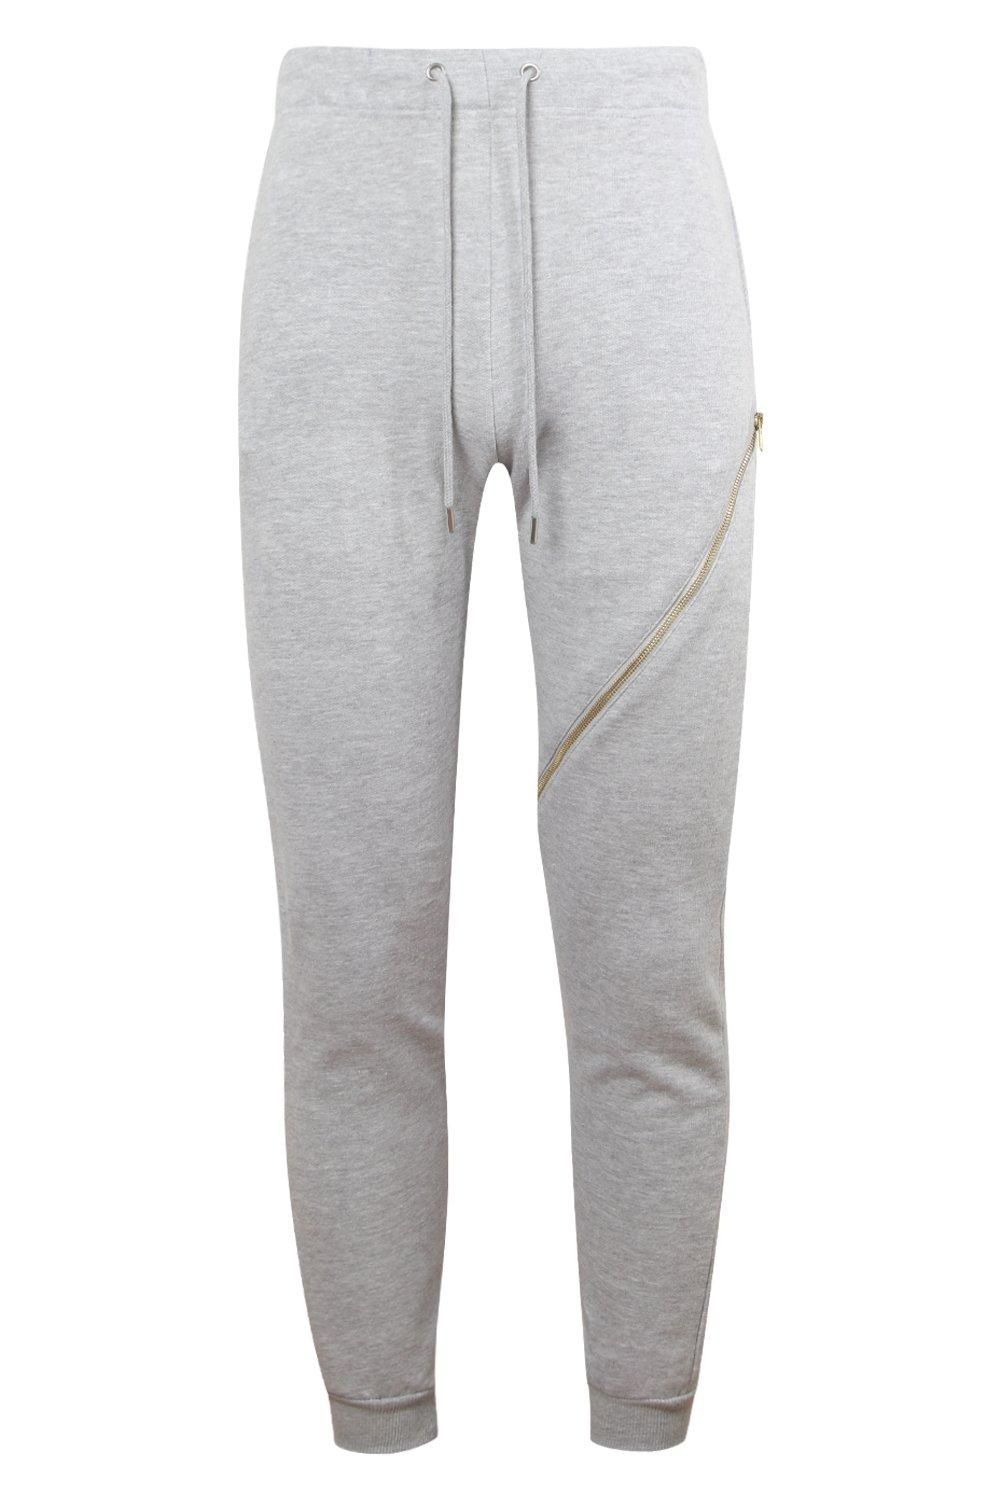 grey Joggers marl Gold With Zips Skinny wBqSdIx8x